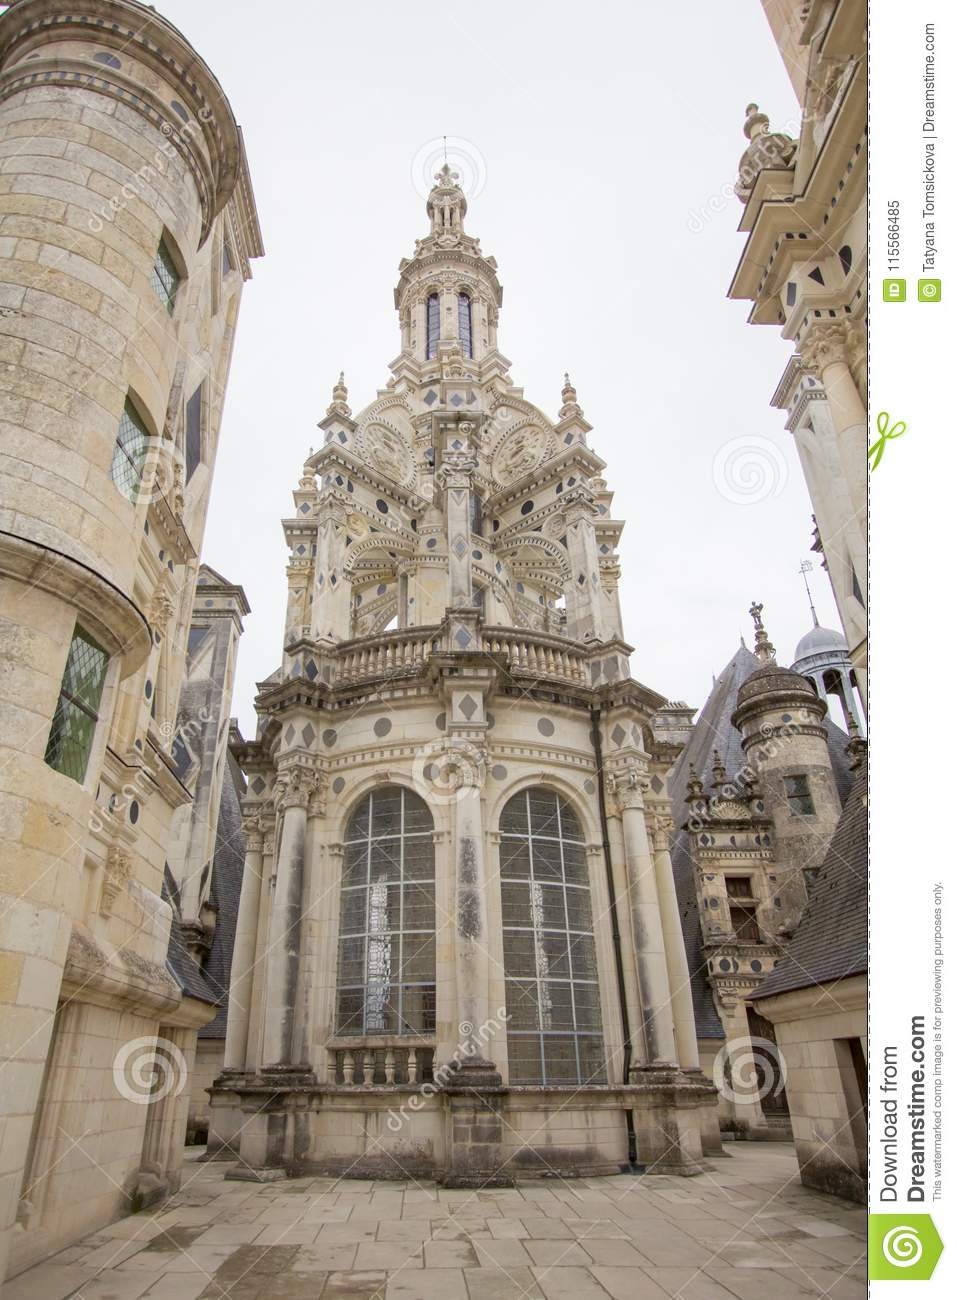 Chateau de Chambord, royal medieval french castle at Loire Valley in France